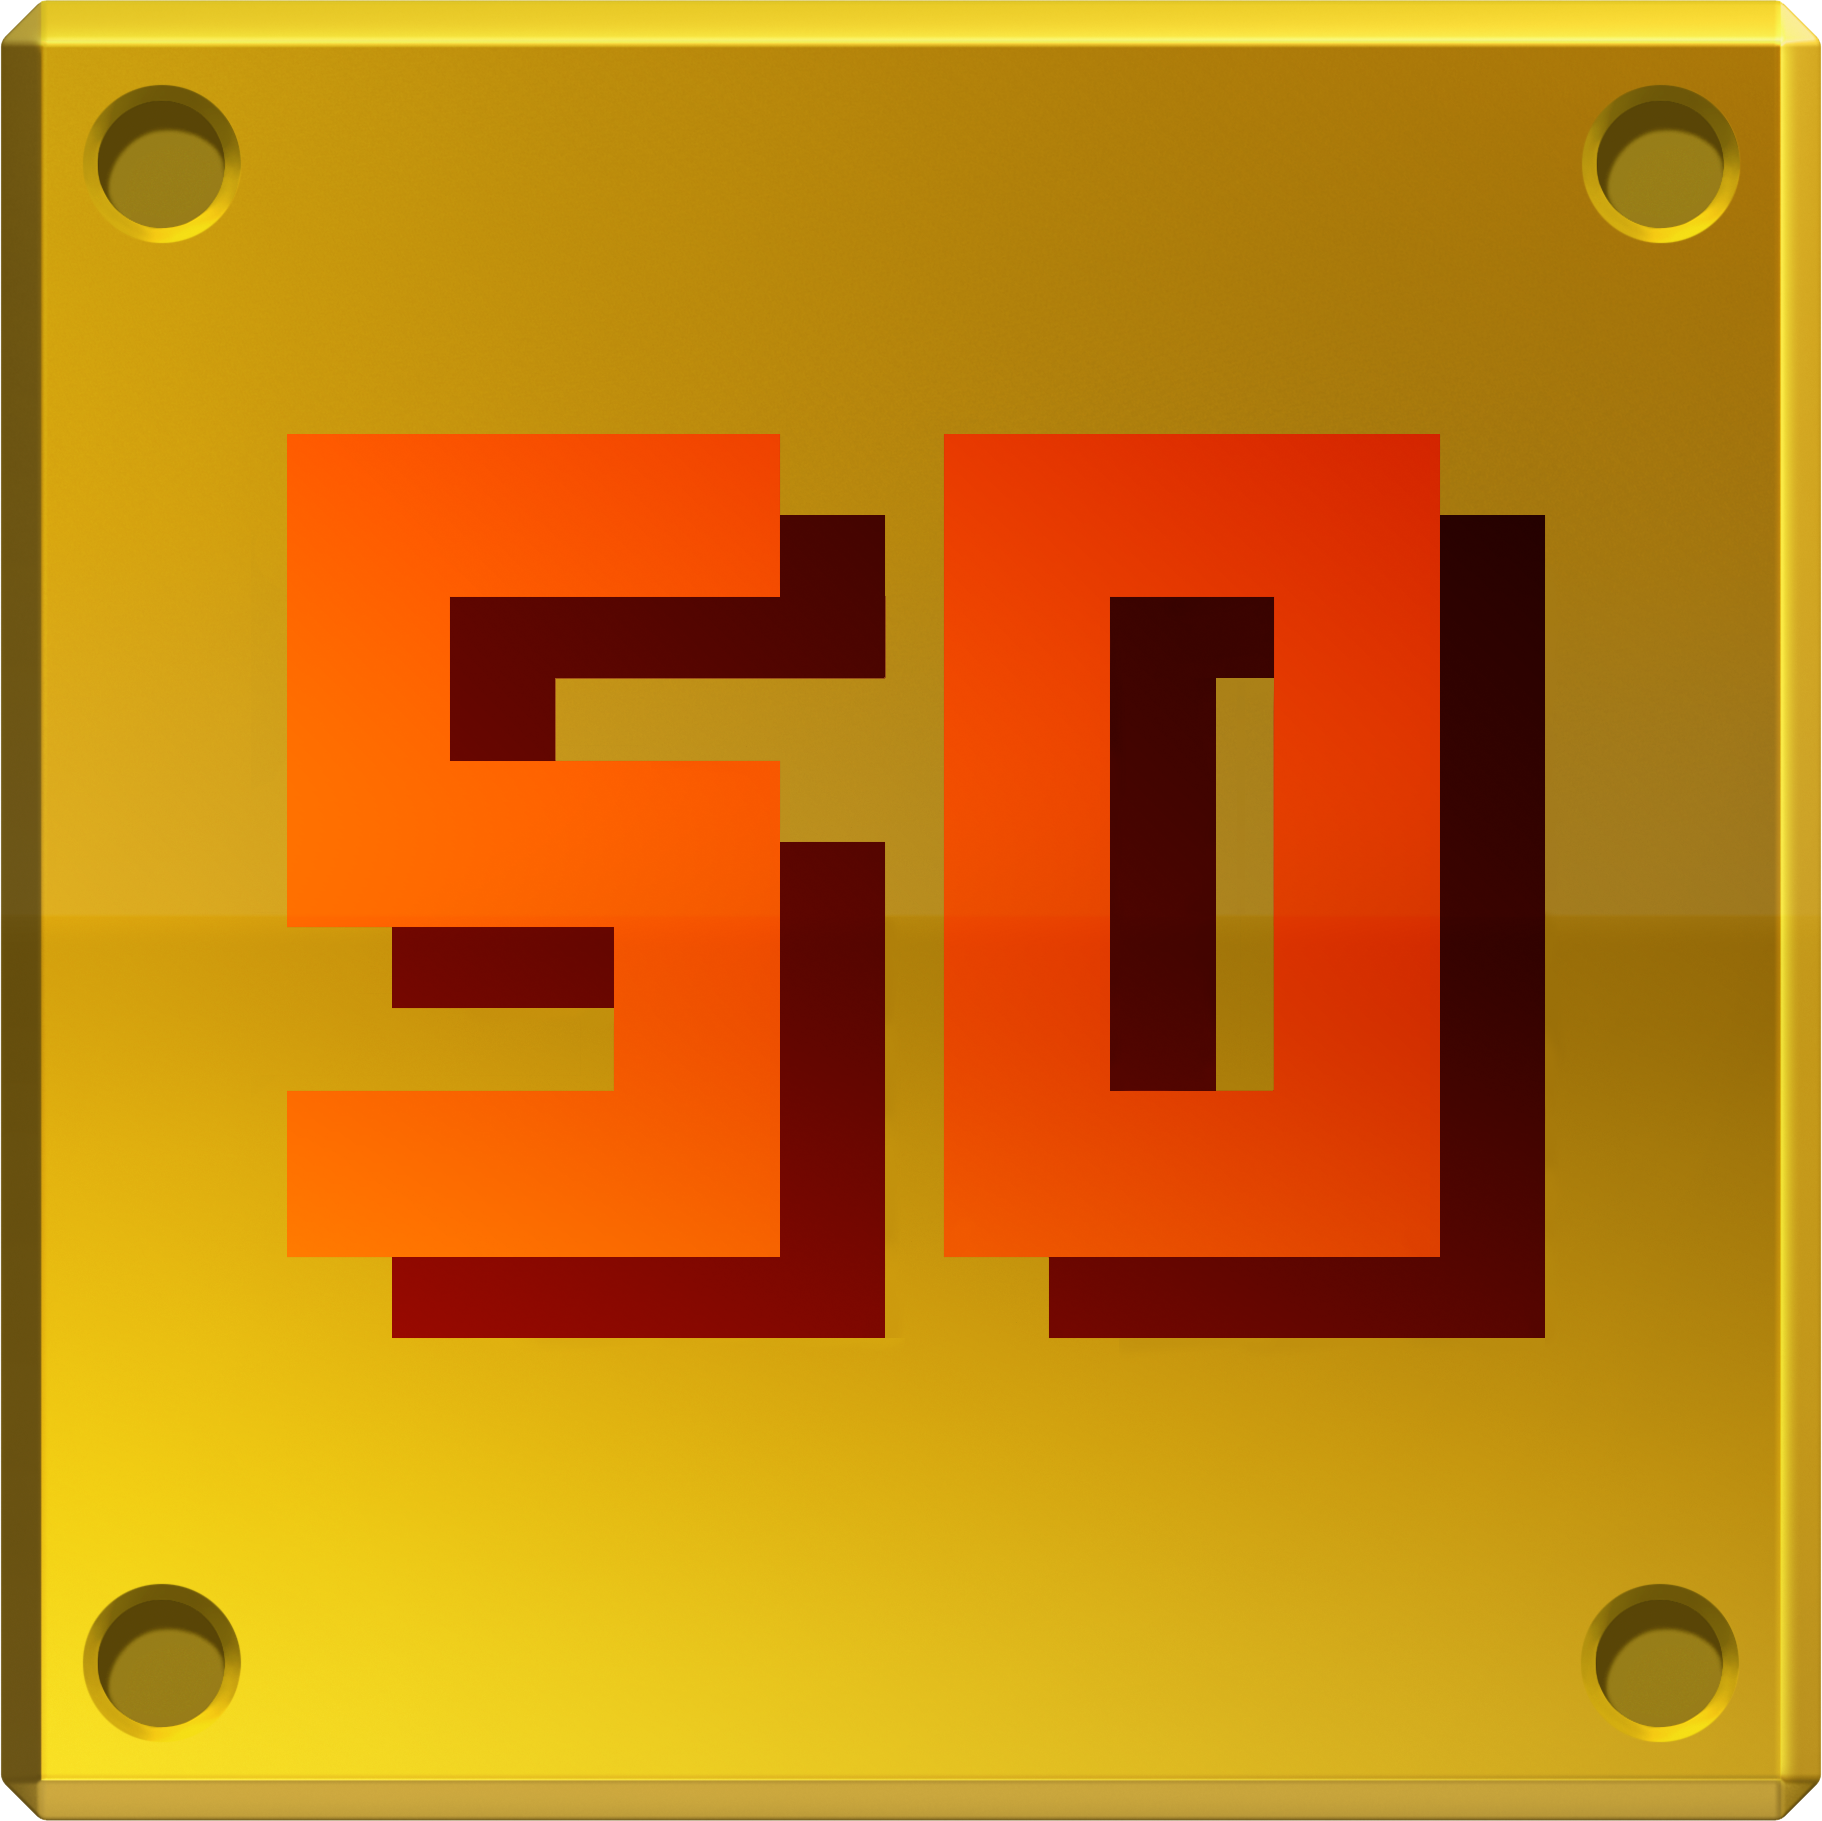 50 Gold Coin Block